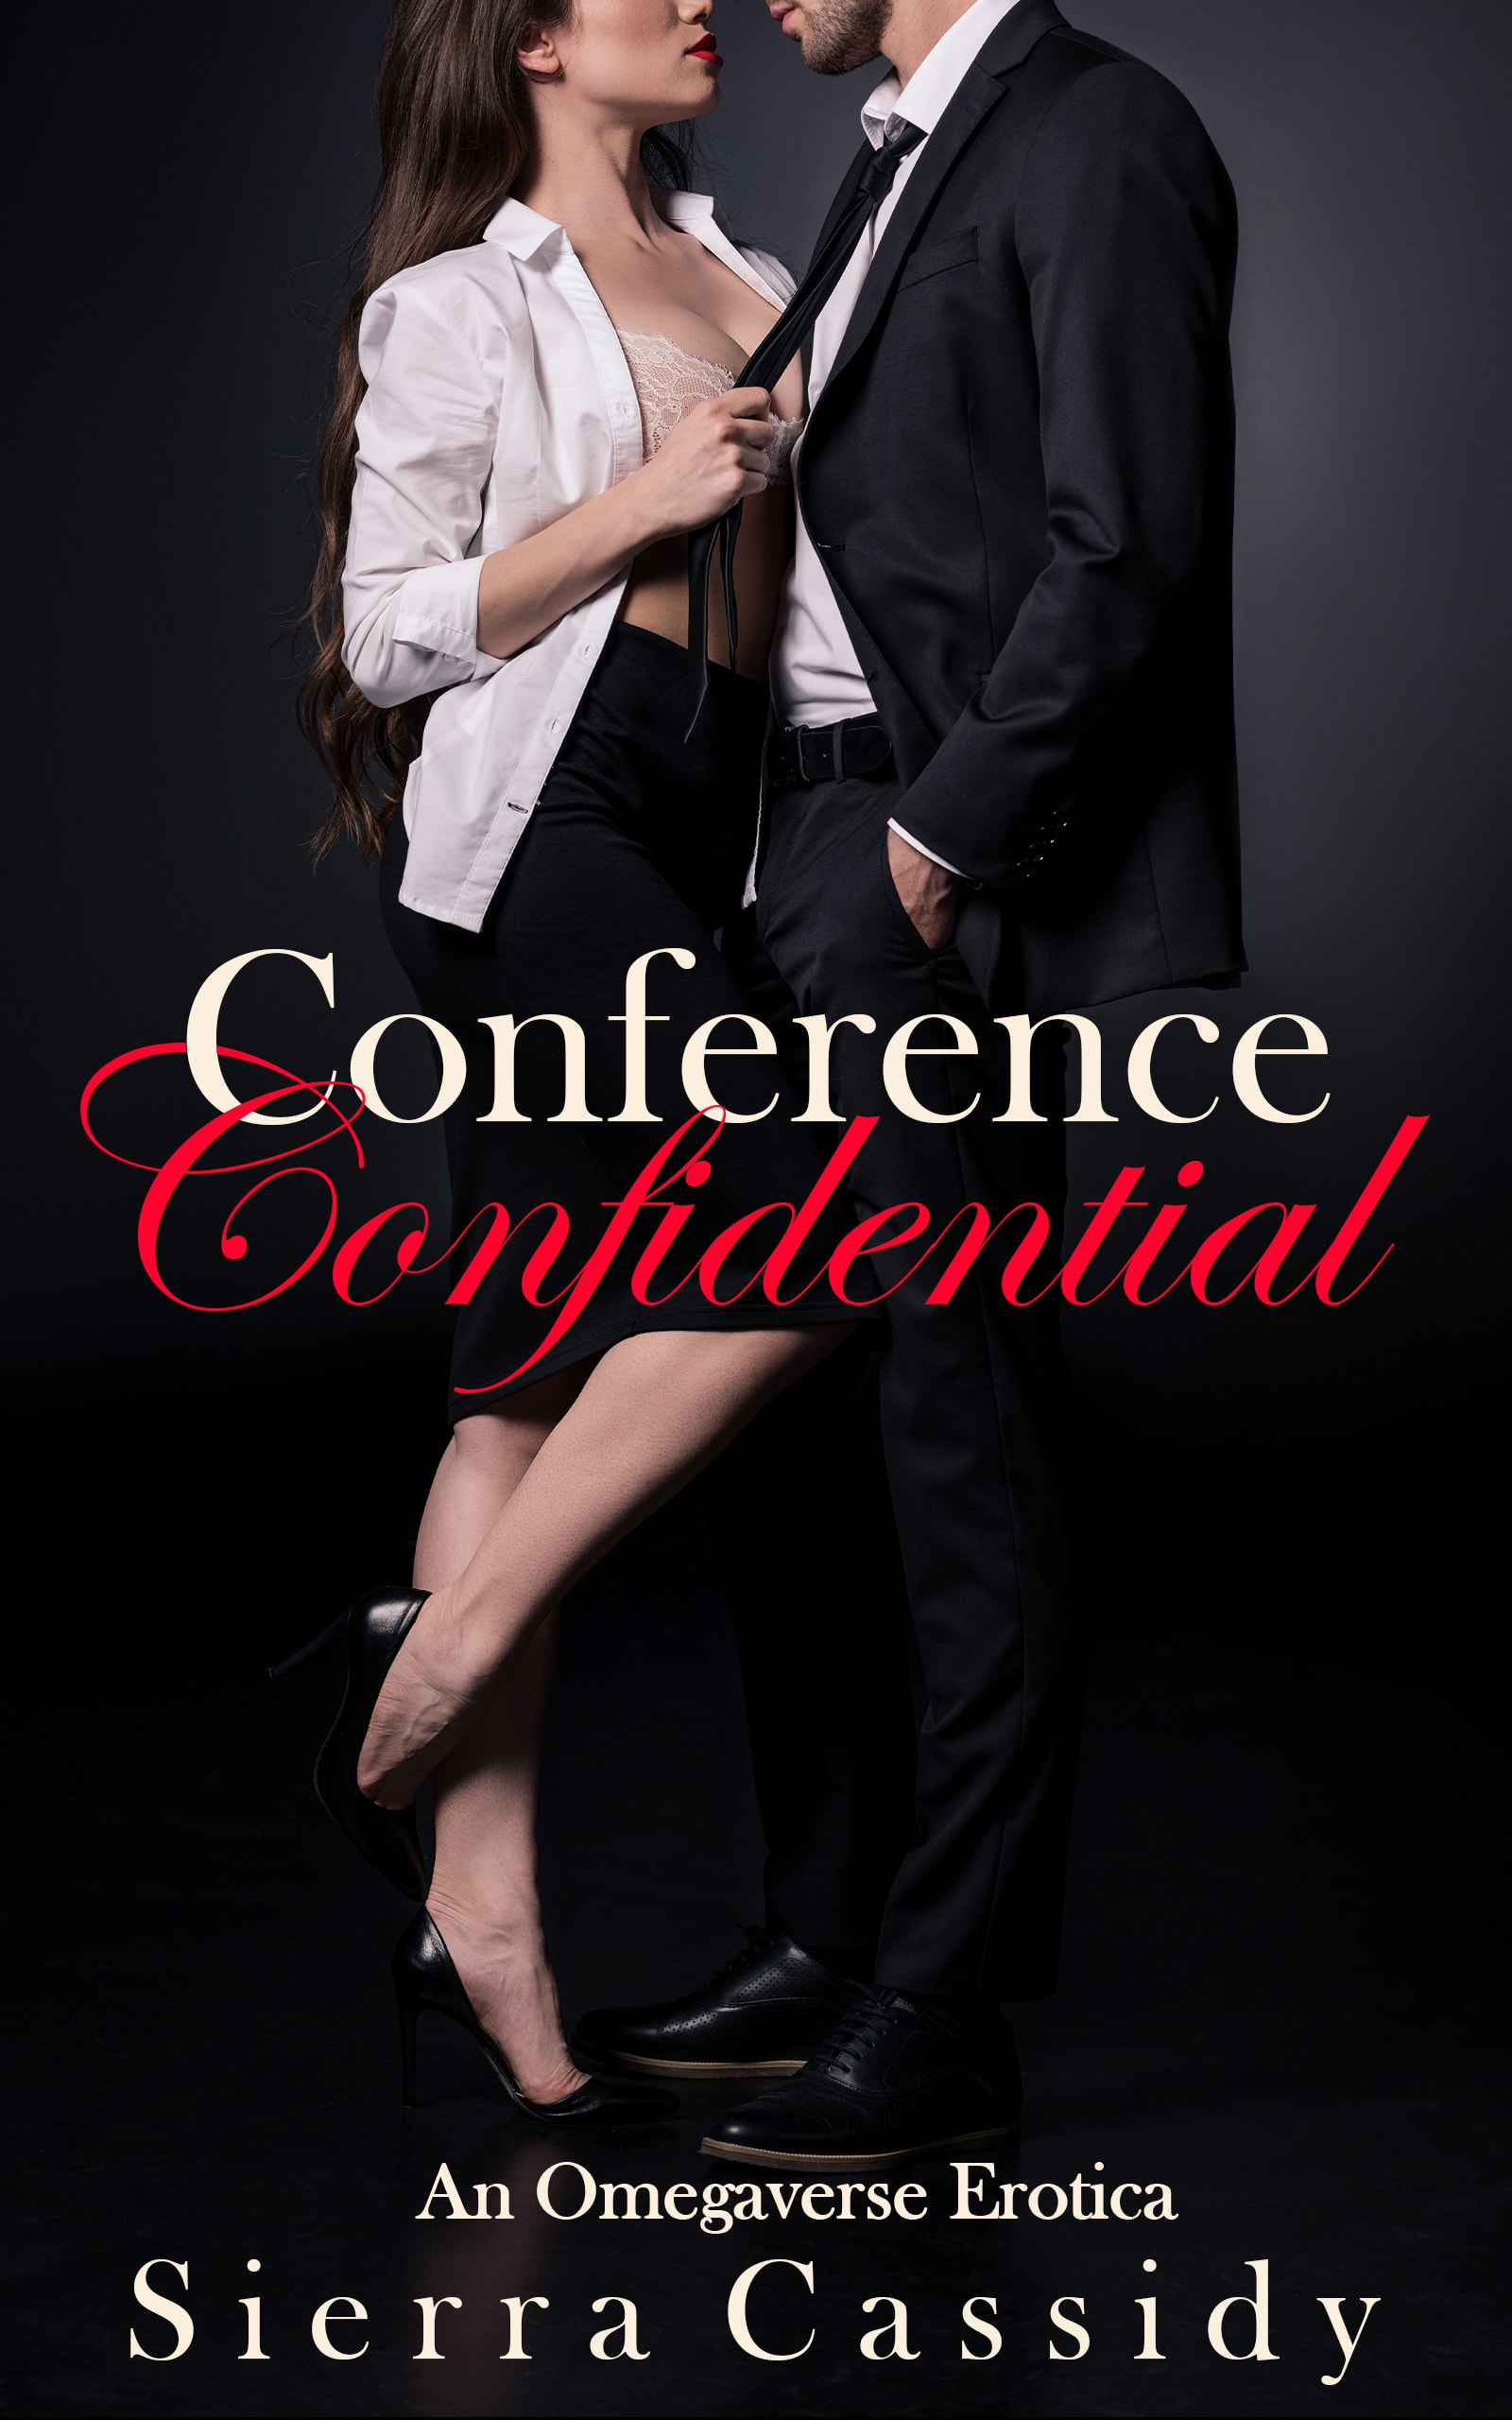 Conference Confidential